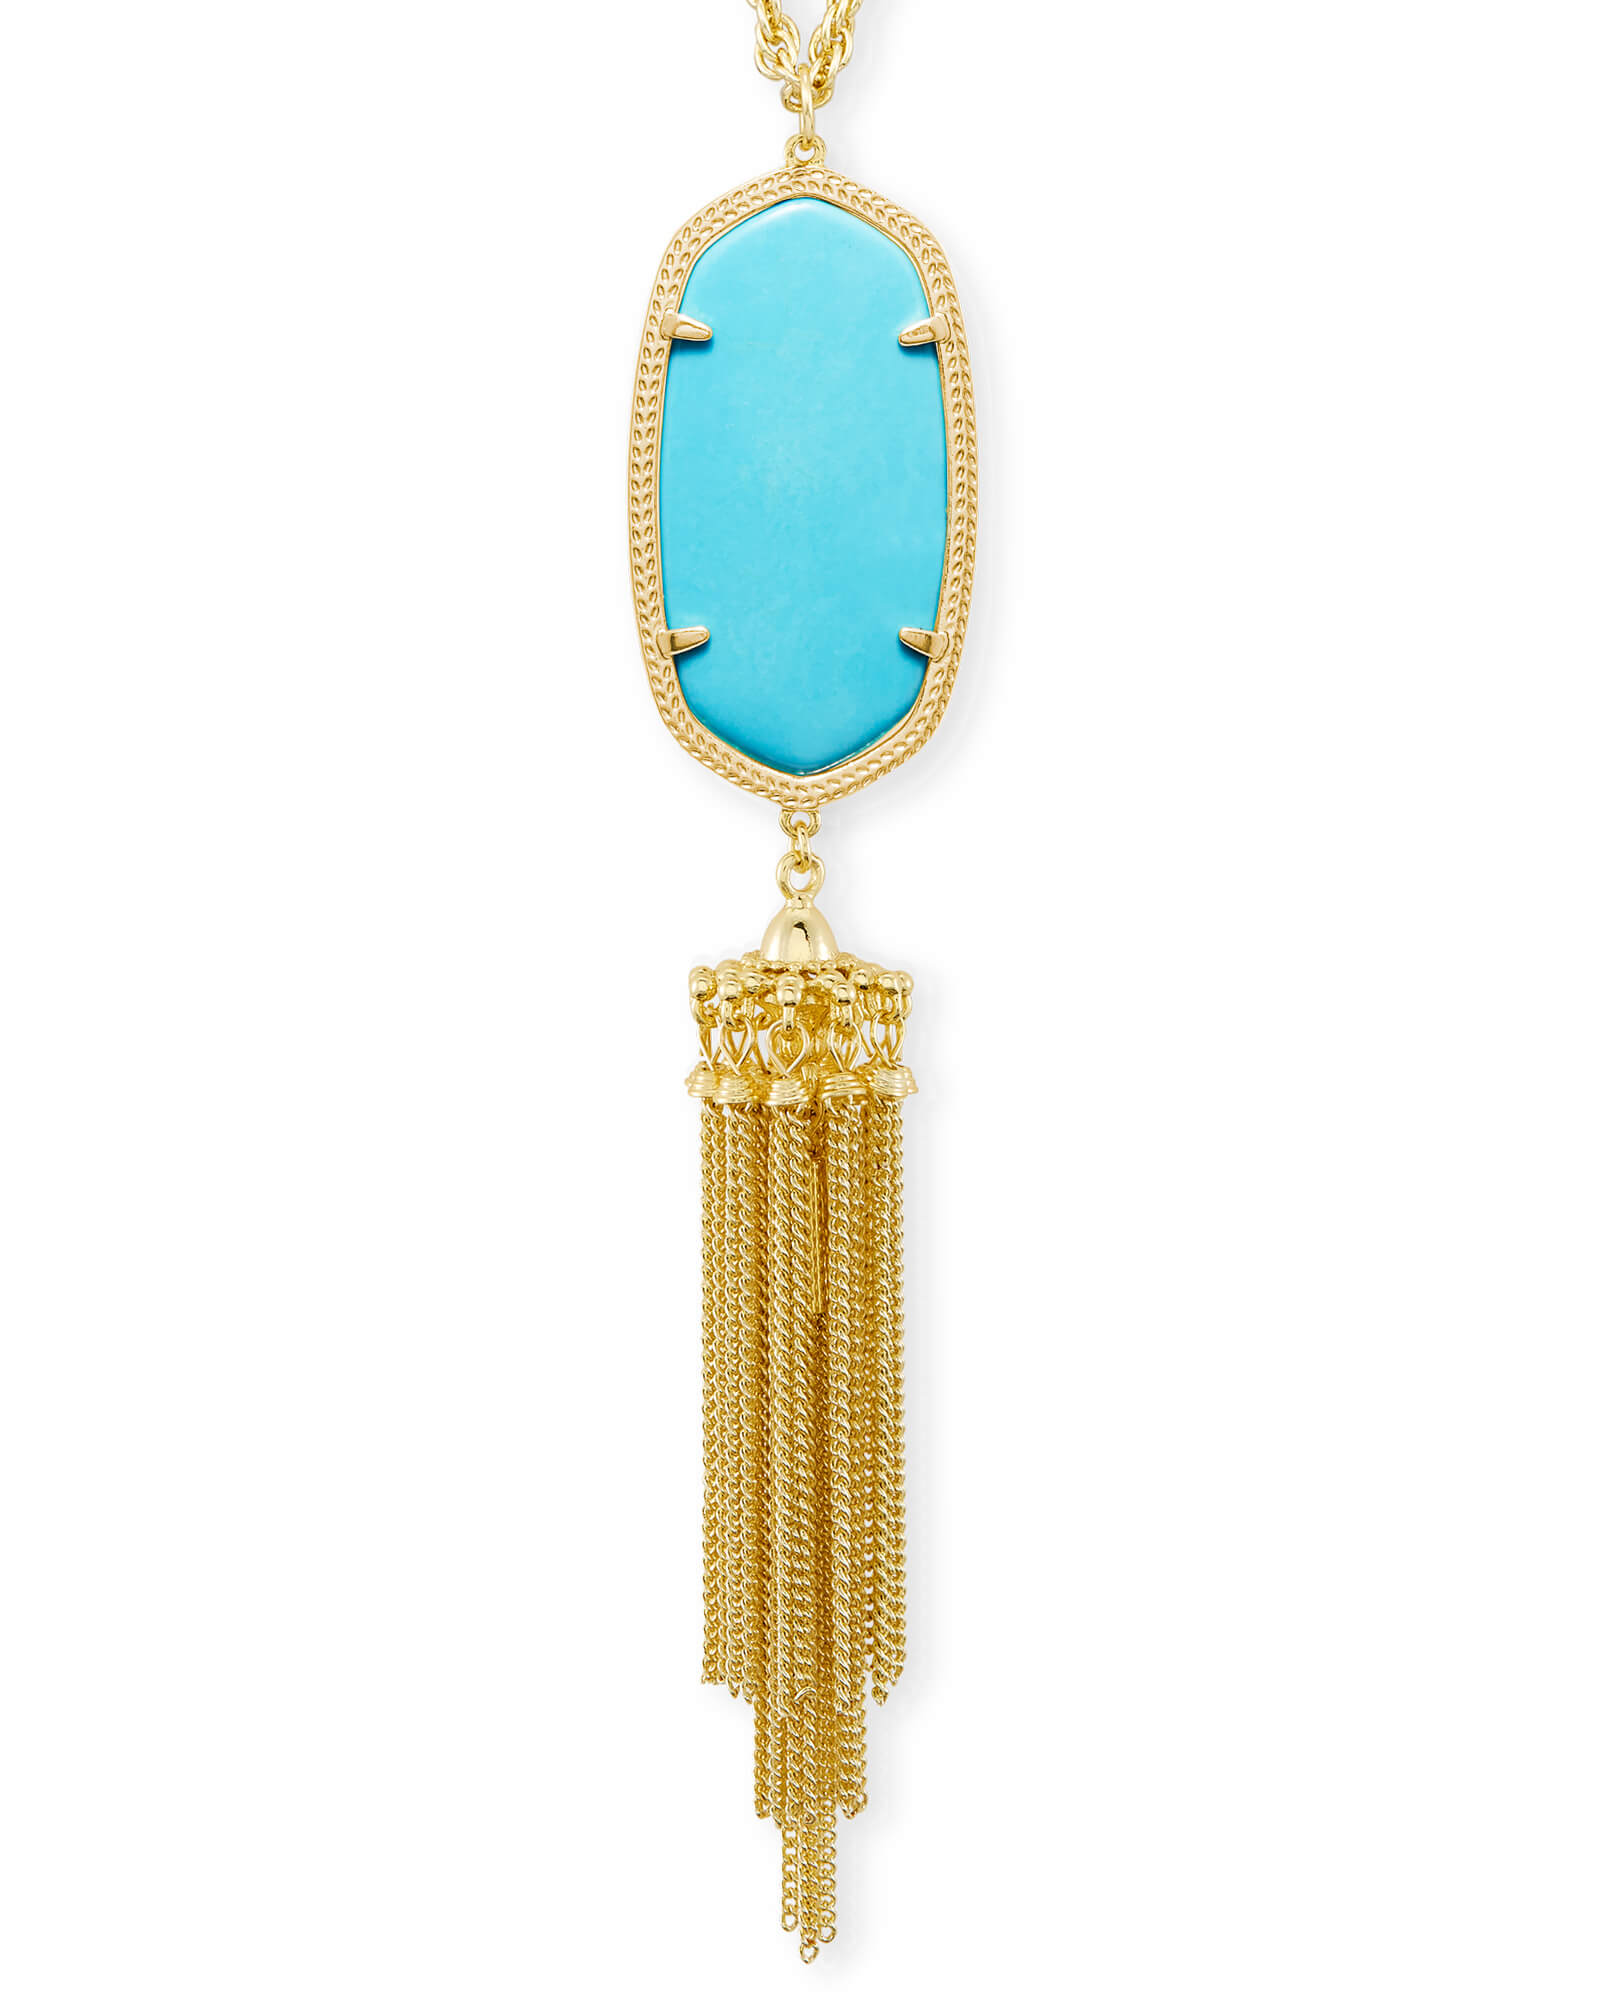 Rayne Gold Long Pendant Necklace in Turquoise Kendra Scott